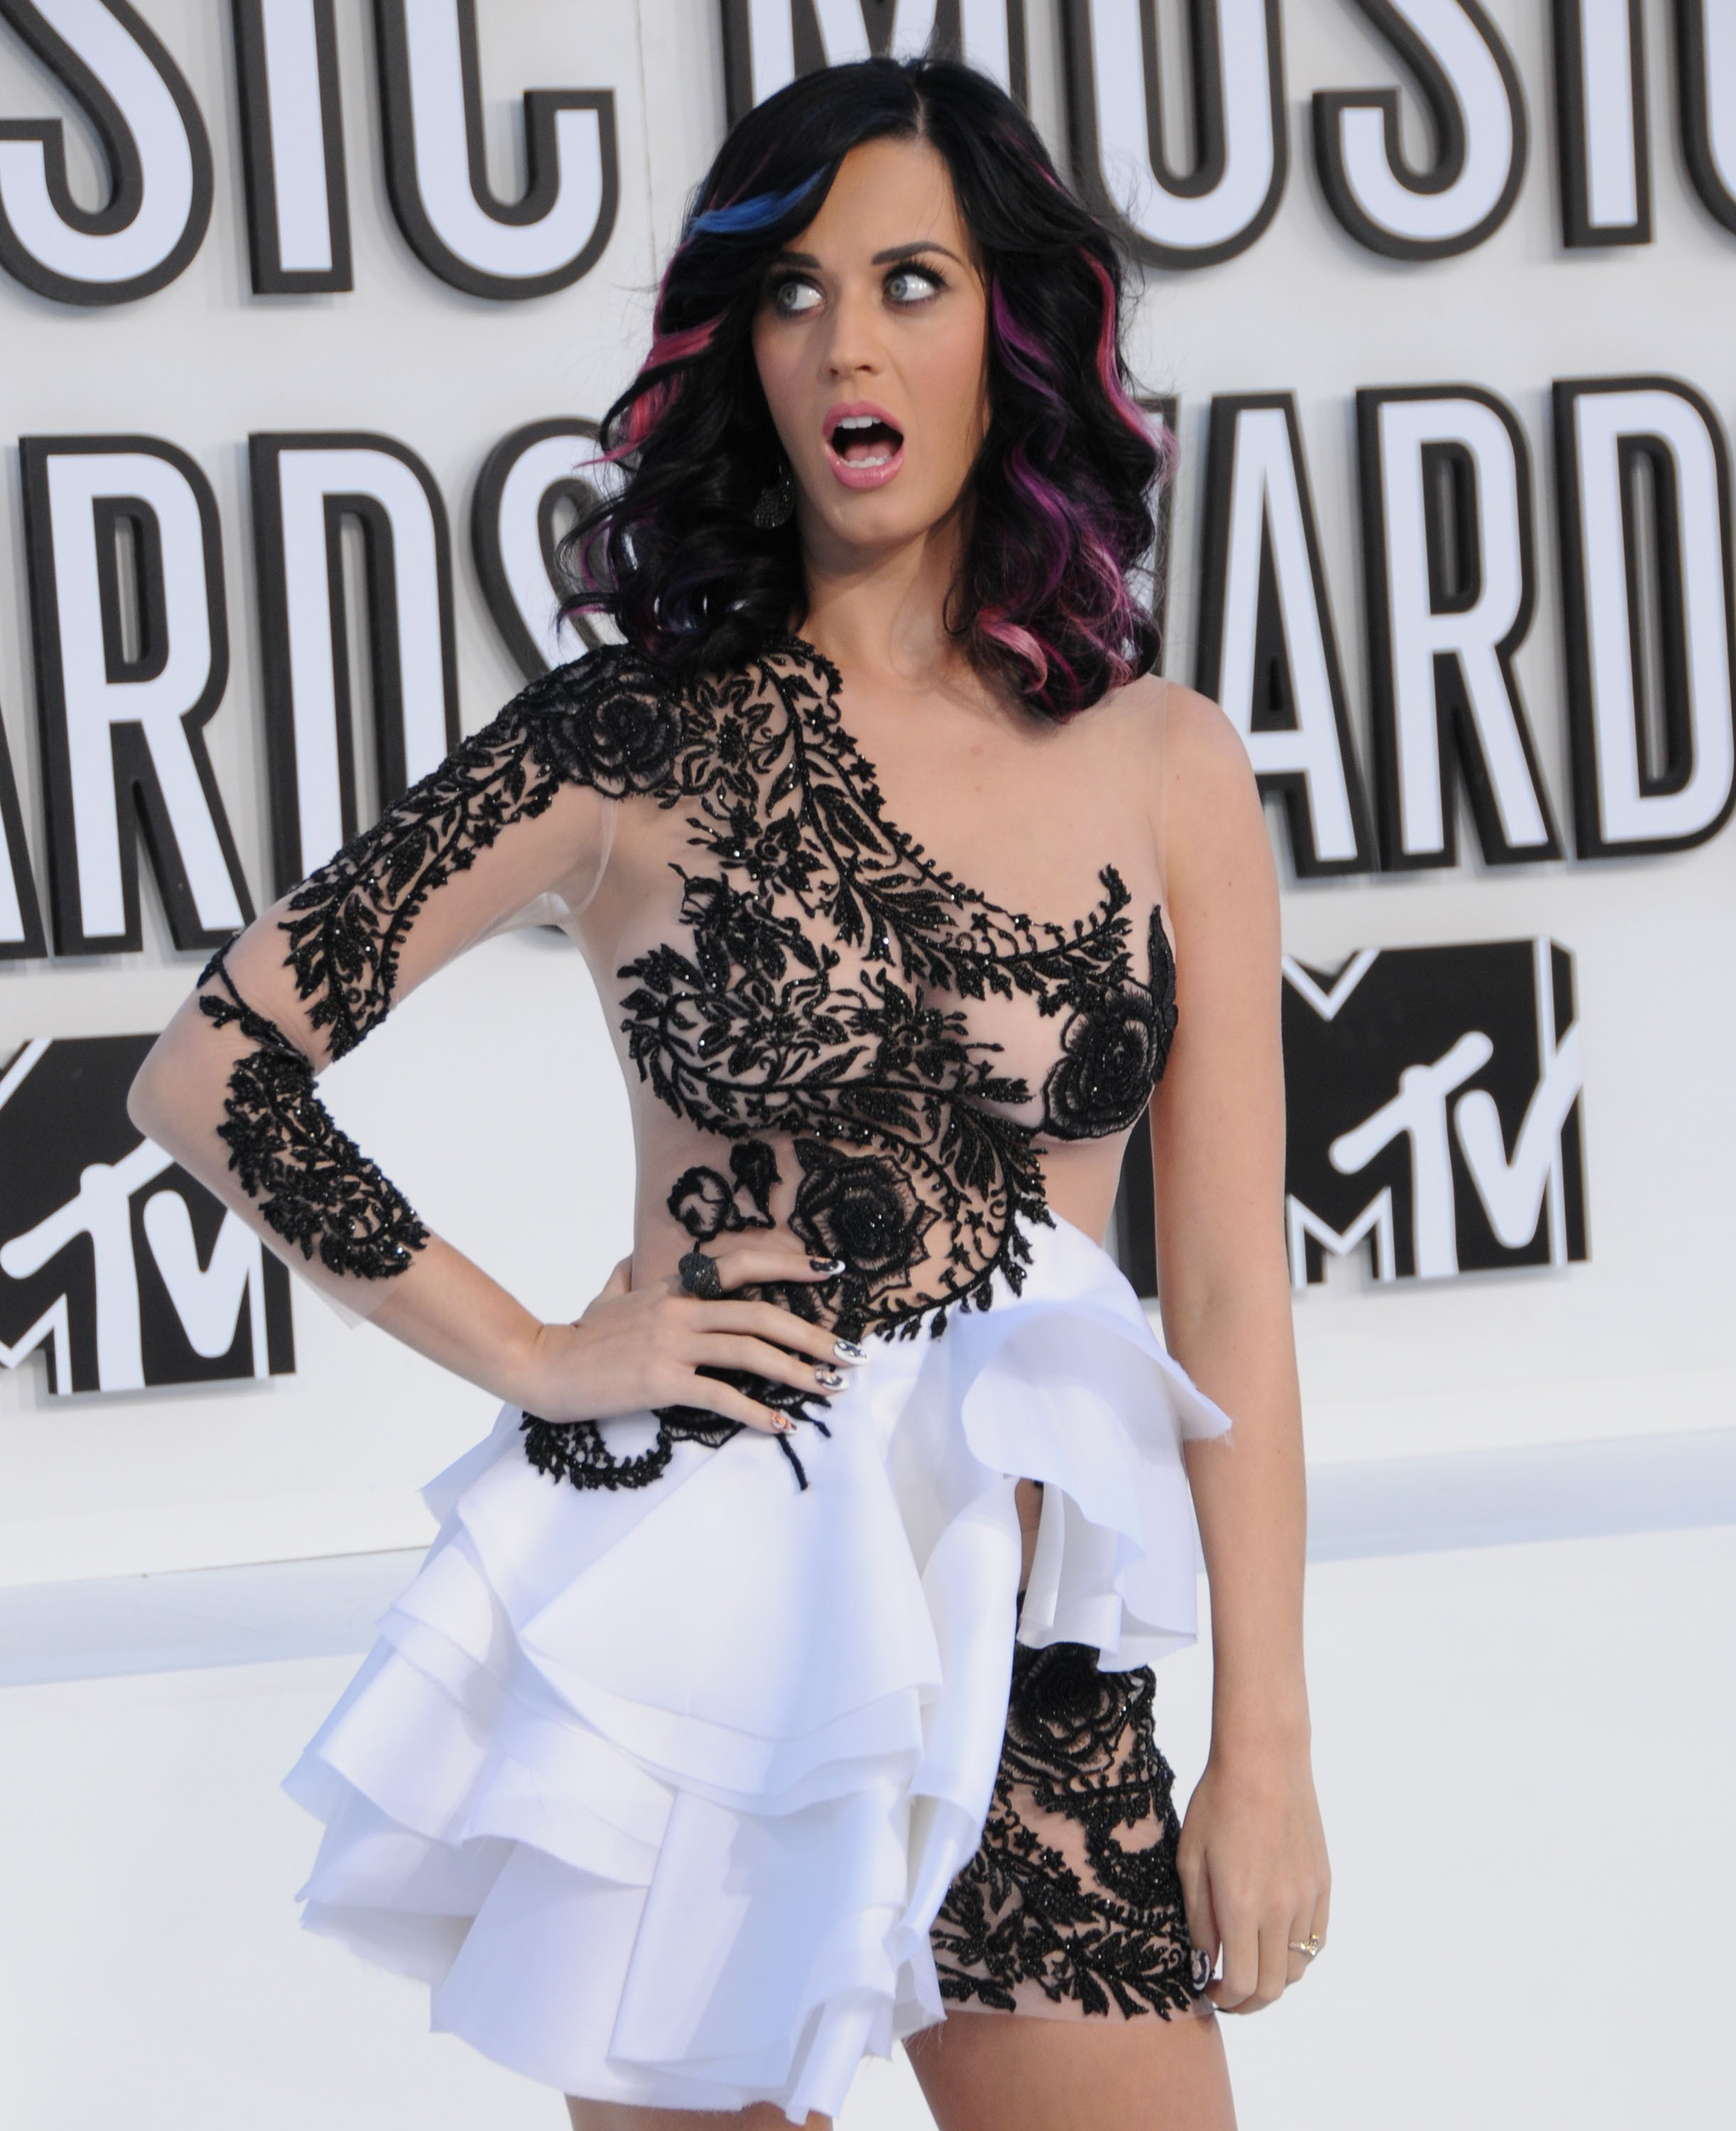 Stars getting katy perry see petticoat resolution ass pics